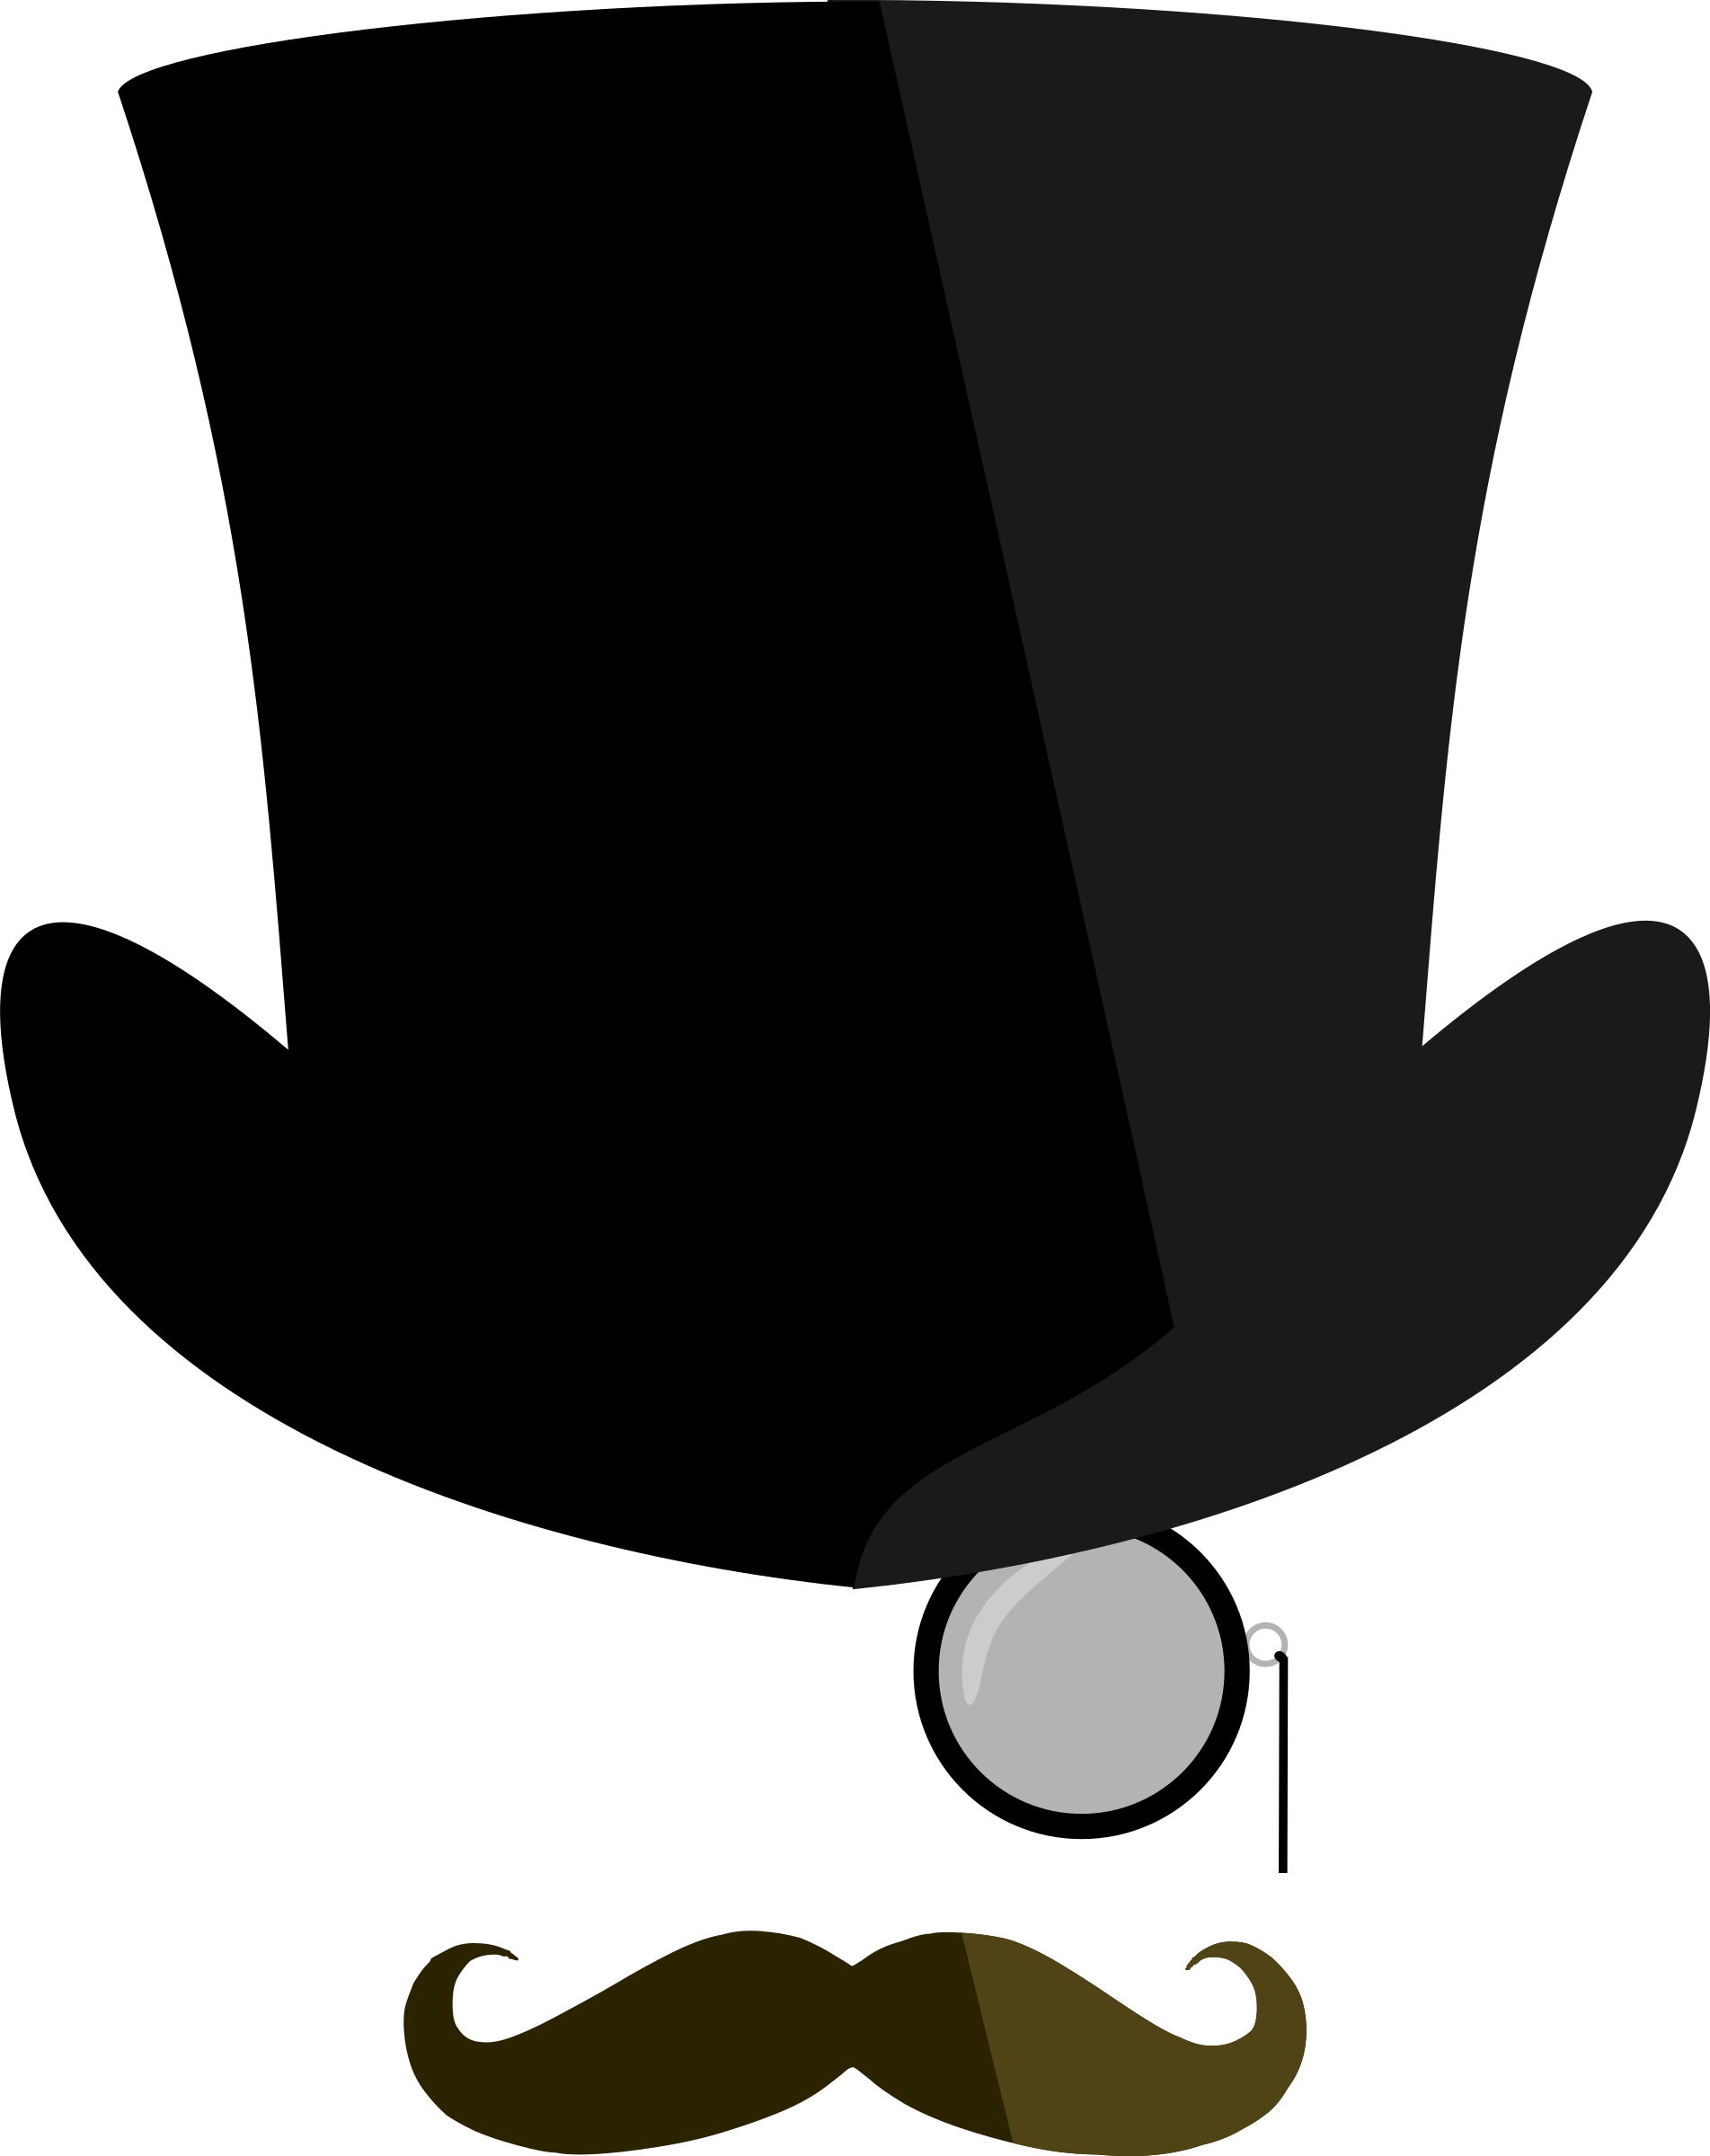 Cat in the hat bowtie clipart graphic transparent download Top hat, moustache, monocle by @Bonzo, Just part of a little project ... graphic transparent download